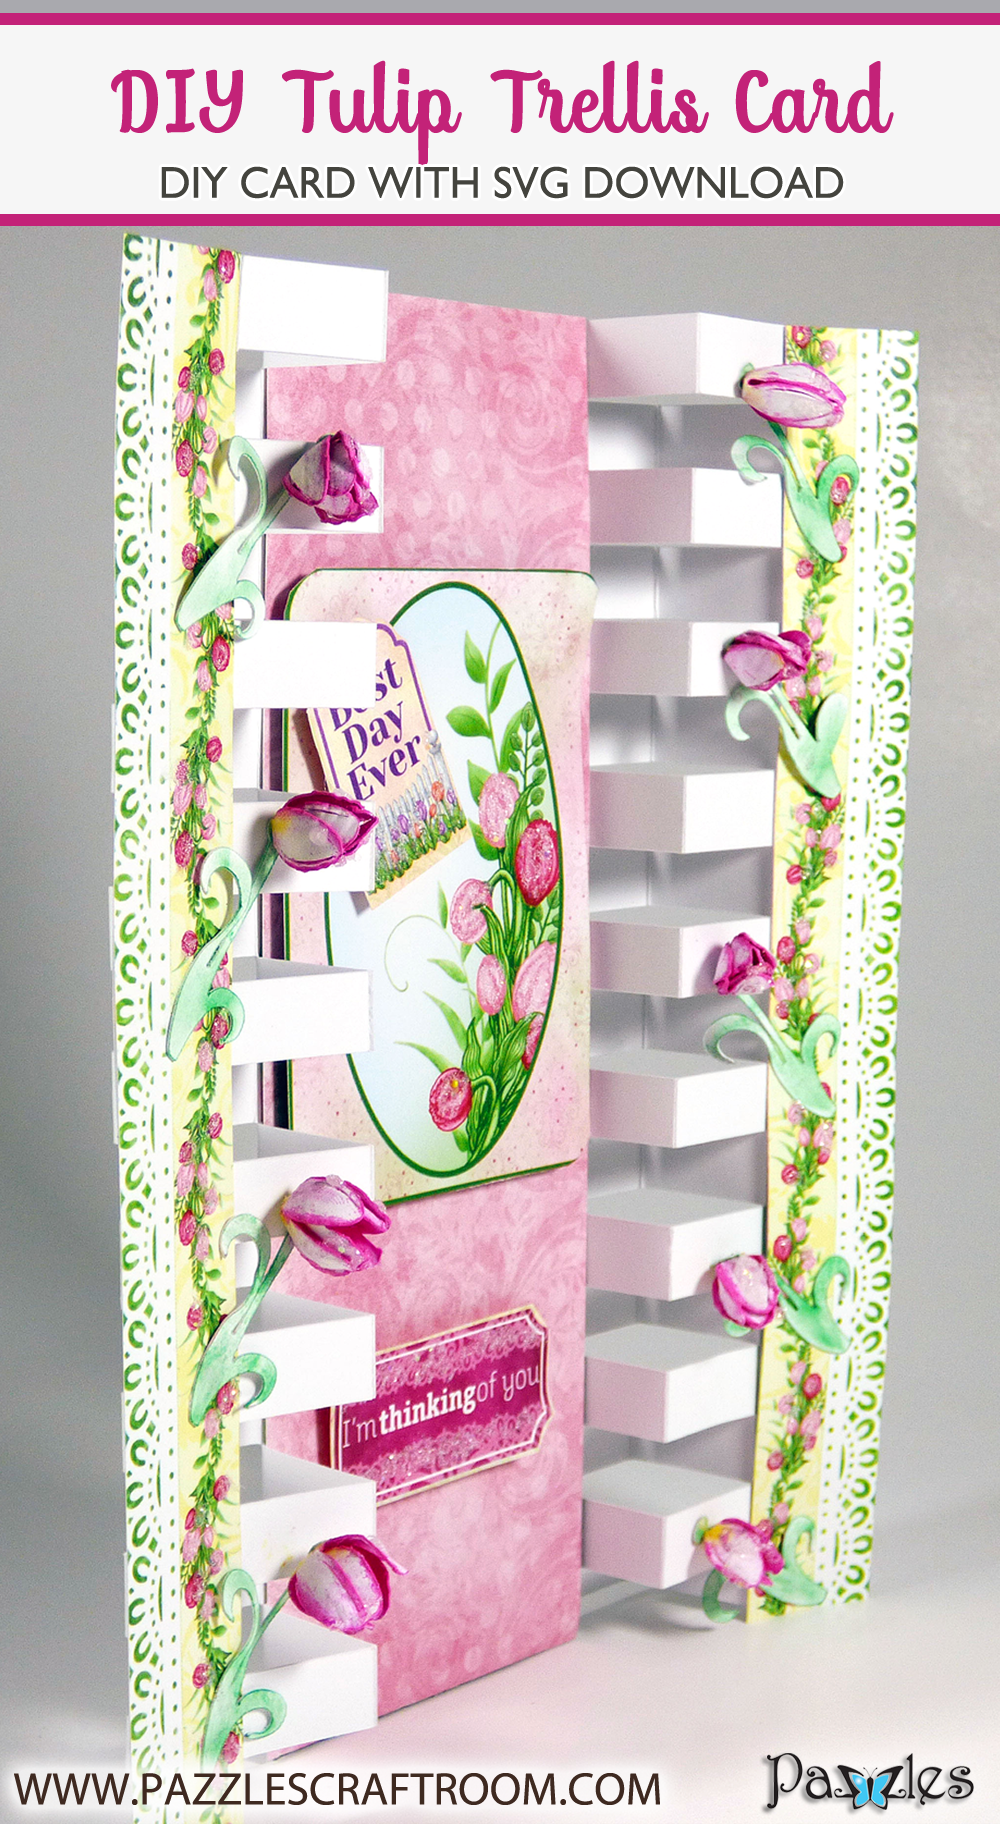 Pazzles DIY Tulip Trellis Card with instant SVG download. Compatible with all major electronic cutters including Pazzles Inspiration, Cricut, and Silhouette Cameo. Design by Julie Flanagan.